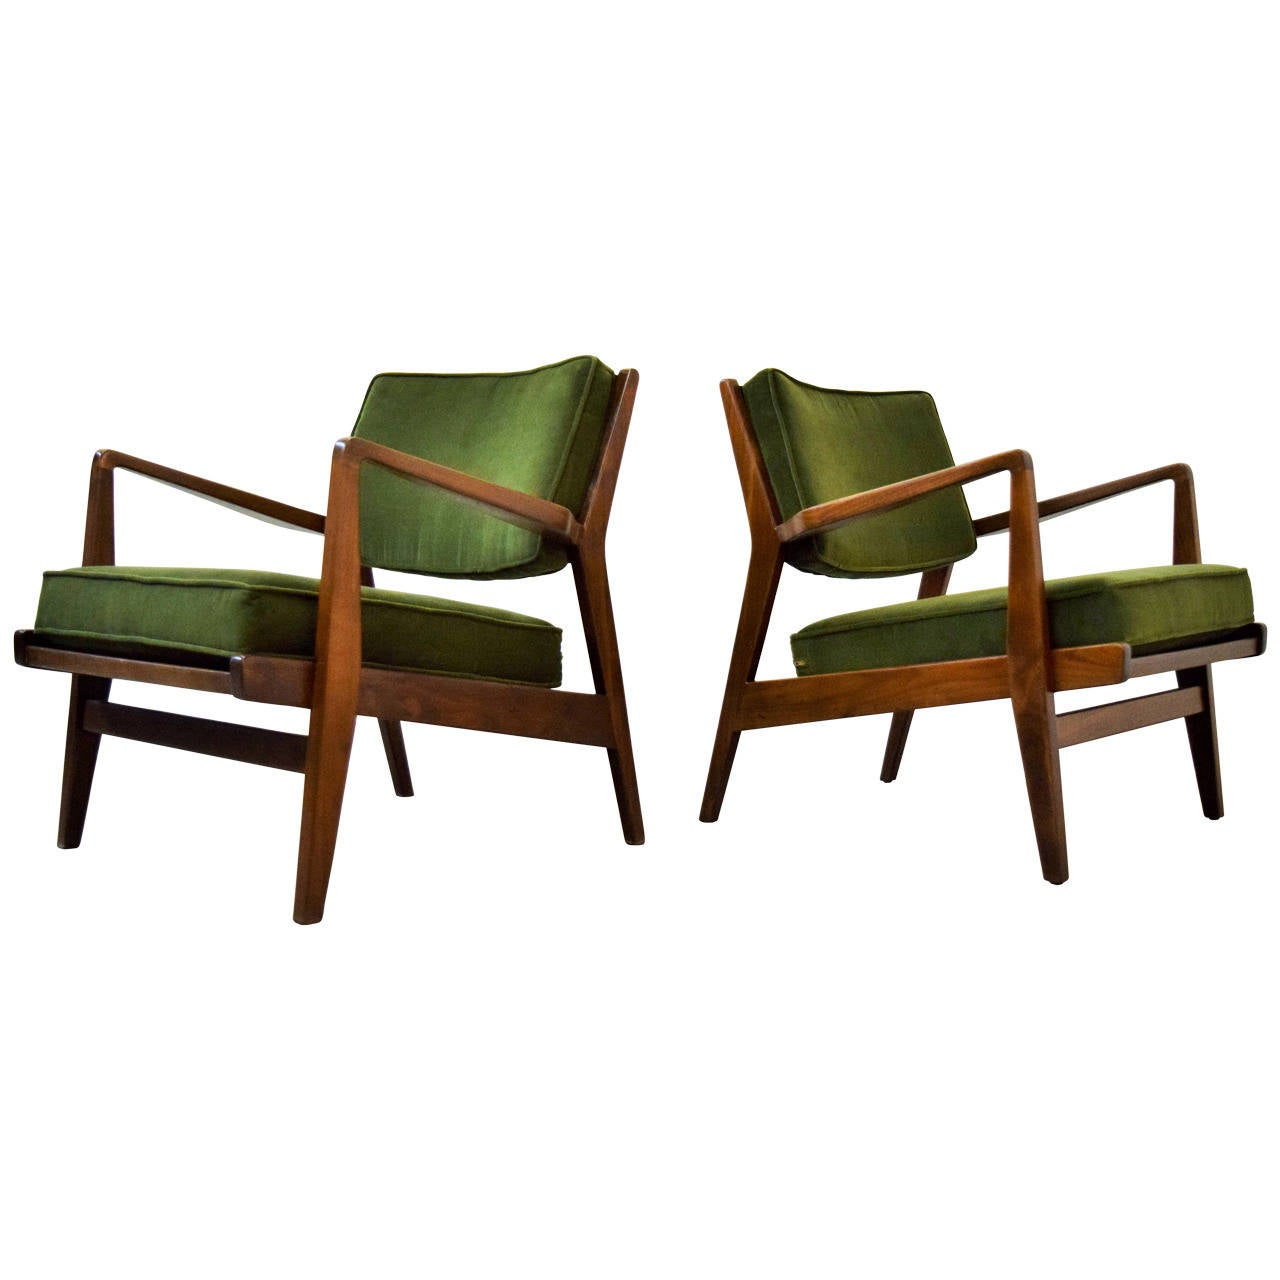 Pair of Jens Risom Lounge Chairs at 1stdibs